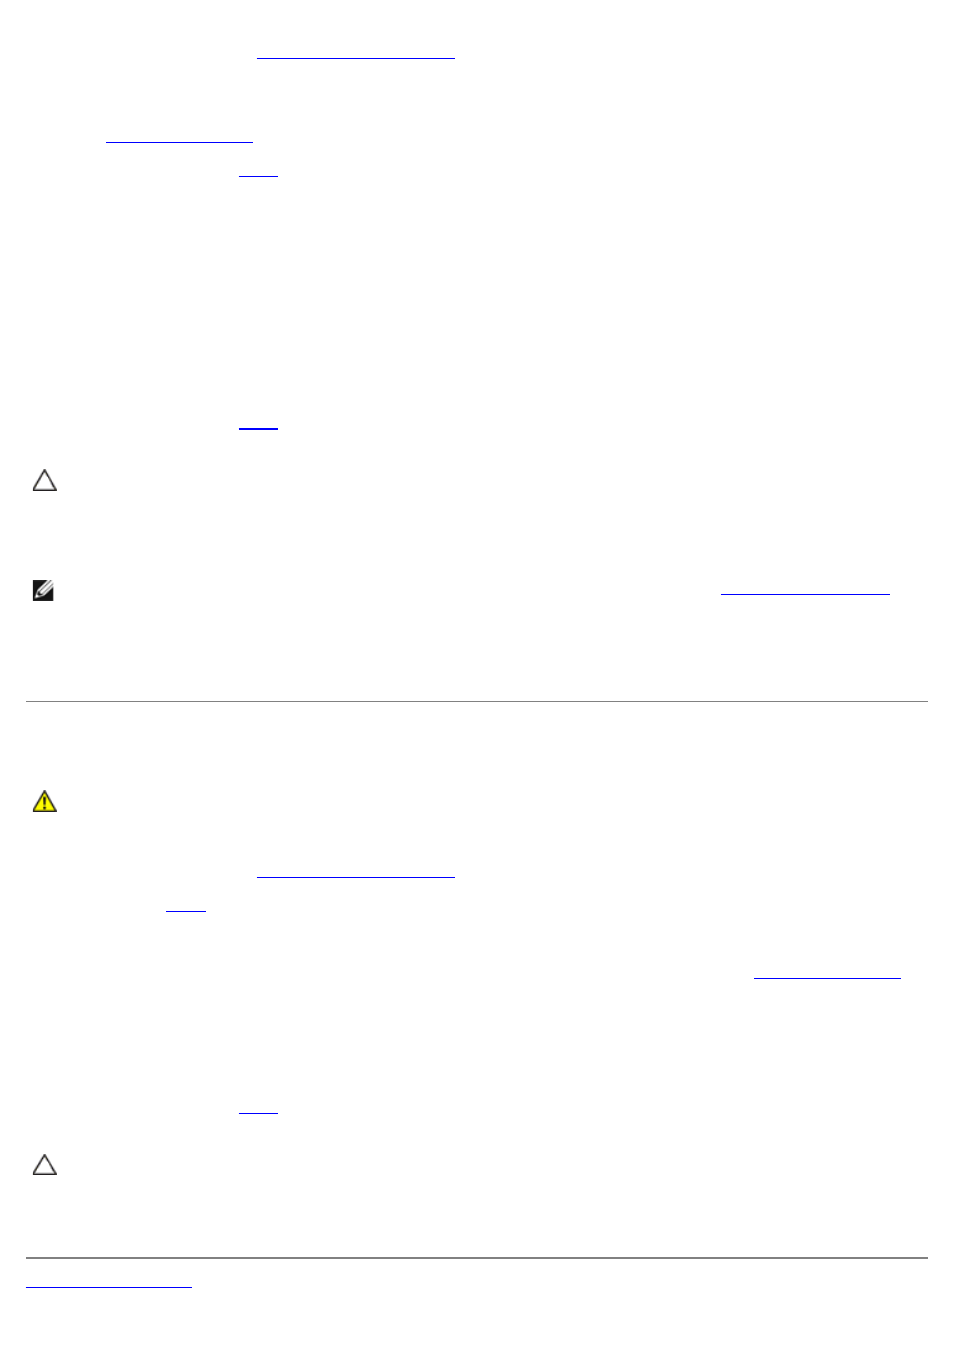 Clearing cmos settings | Dell OptiPlex 780 User Manual | Page 19 / 73